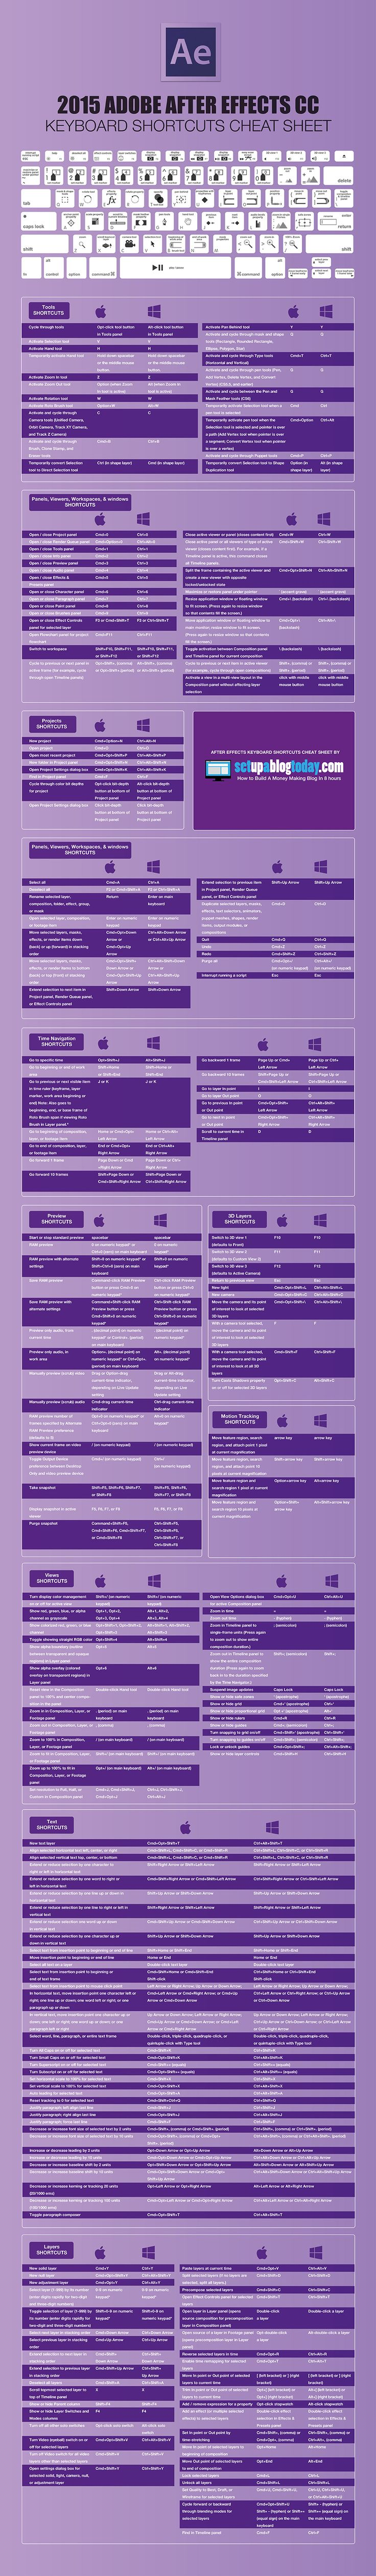 Hola: Una infografía sobre los Atajos de teclado de Adobe After Effects. Un saludo By the guys over atCreate a Blog Today